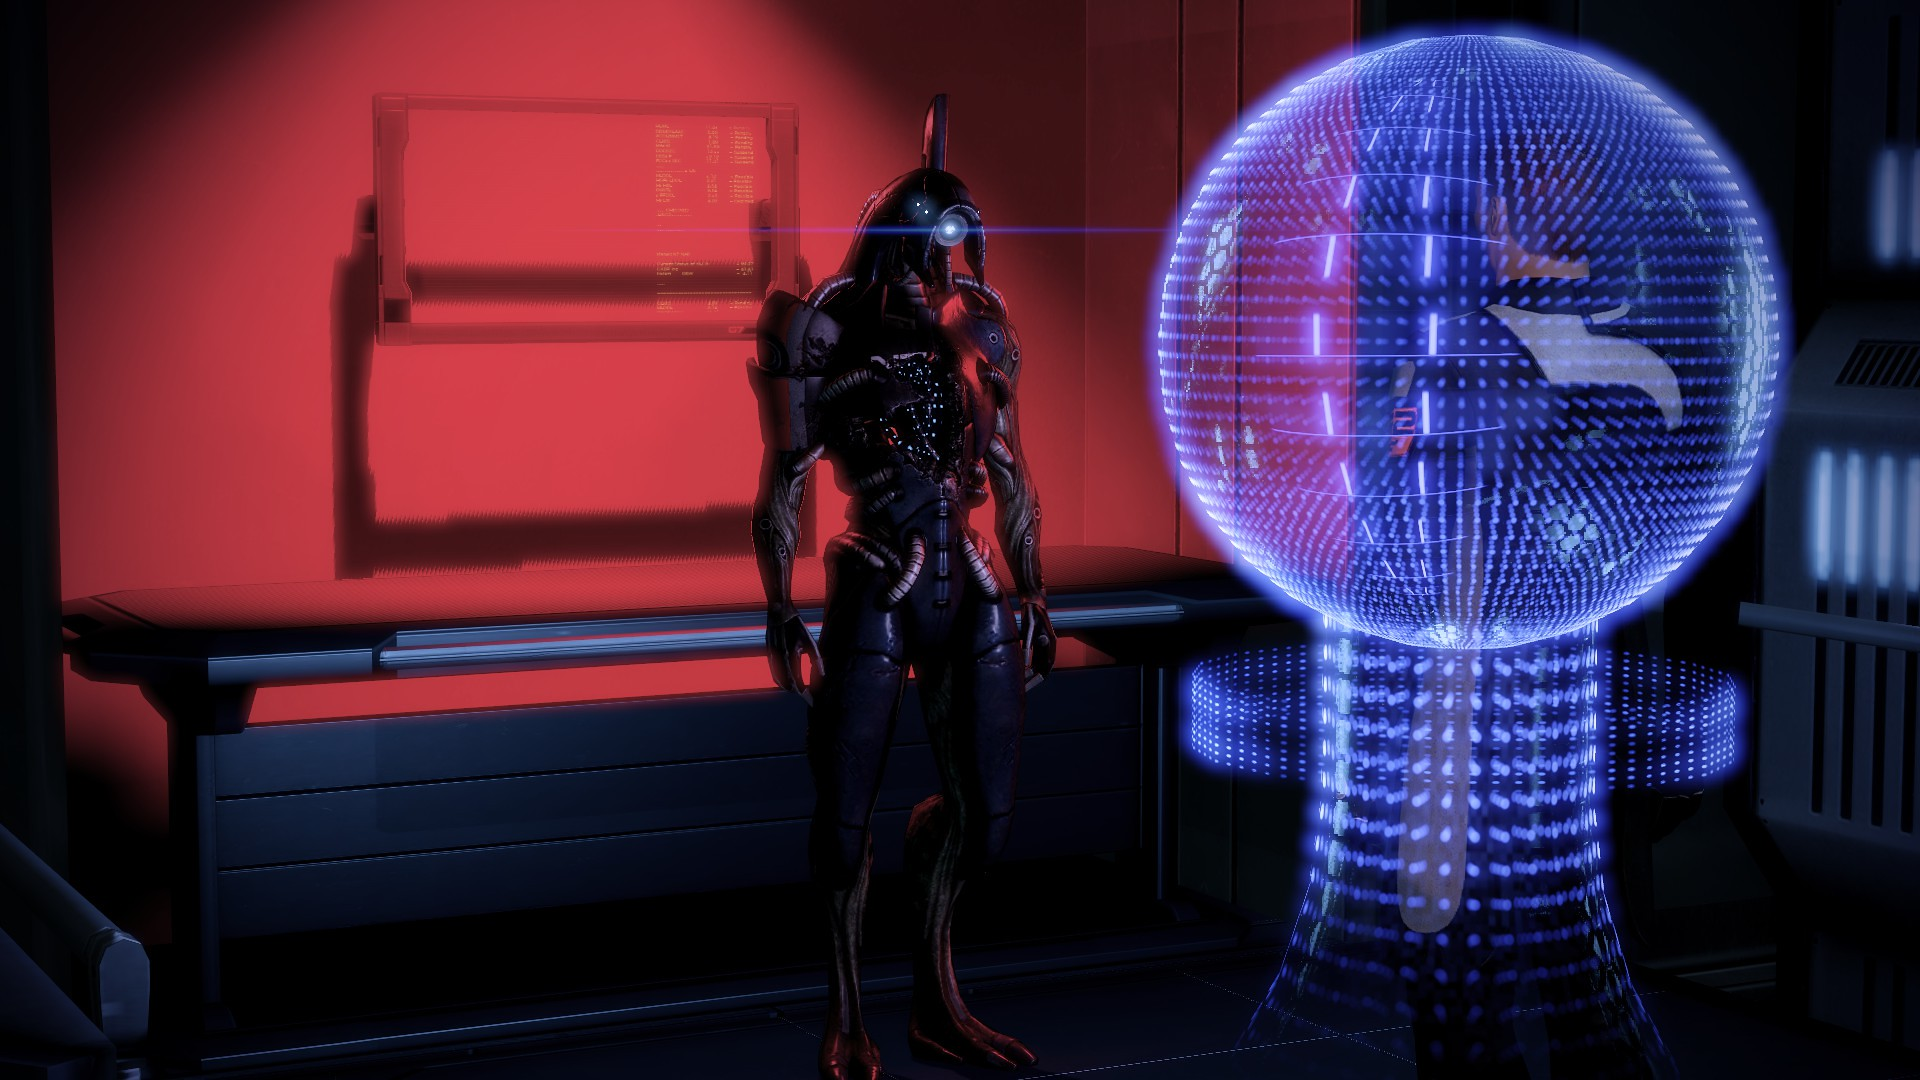 11977398724_17560ec4a8_k.jpg - Mass Effect 2